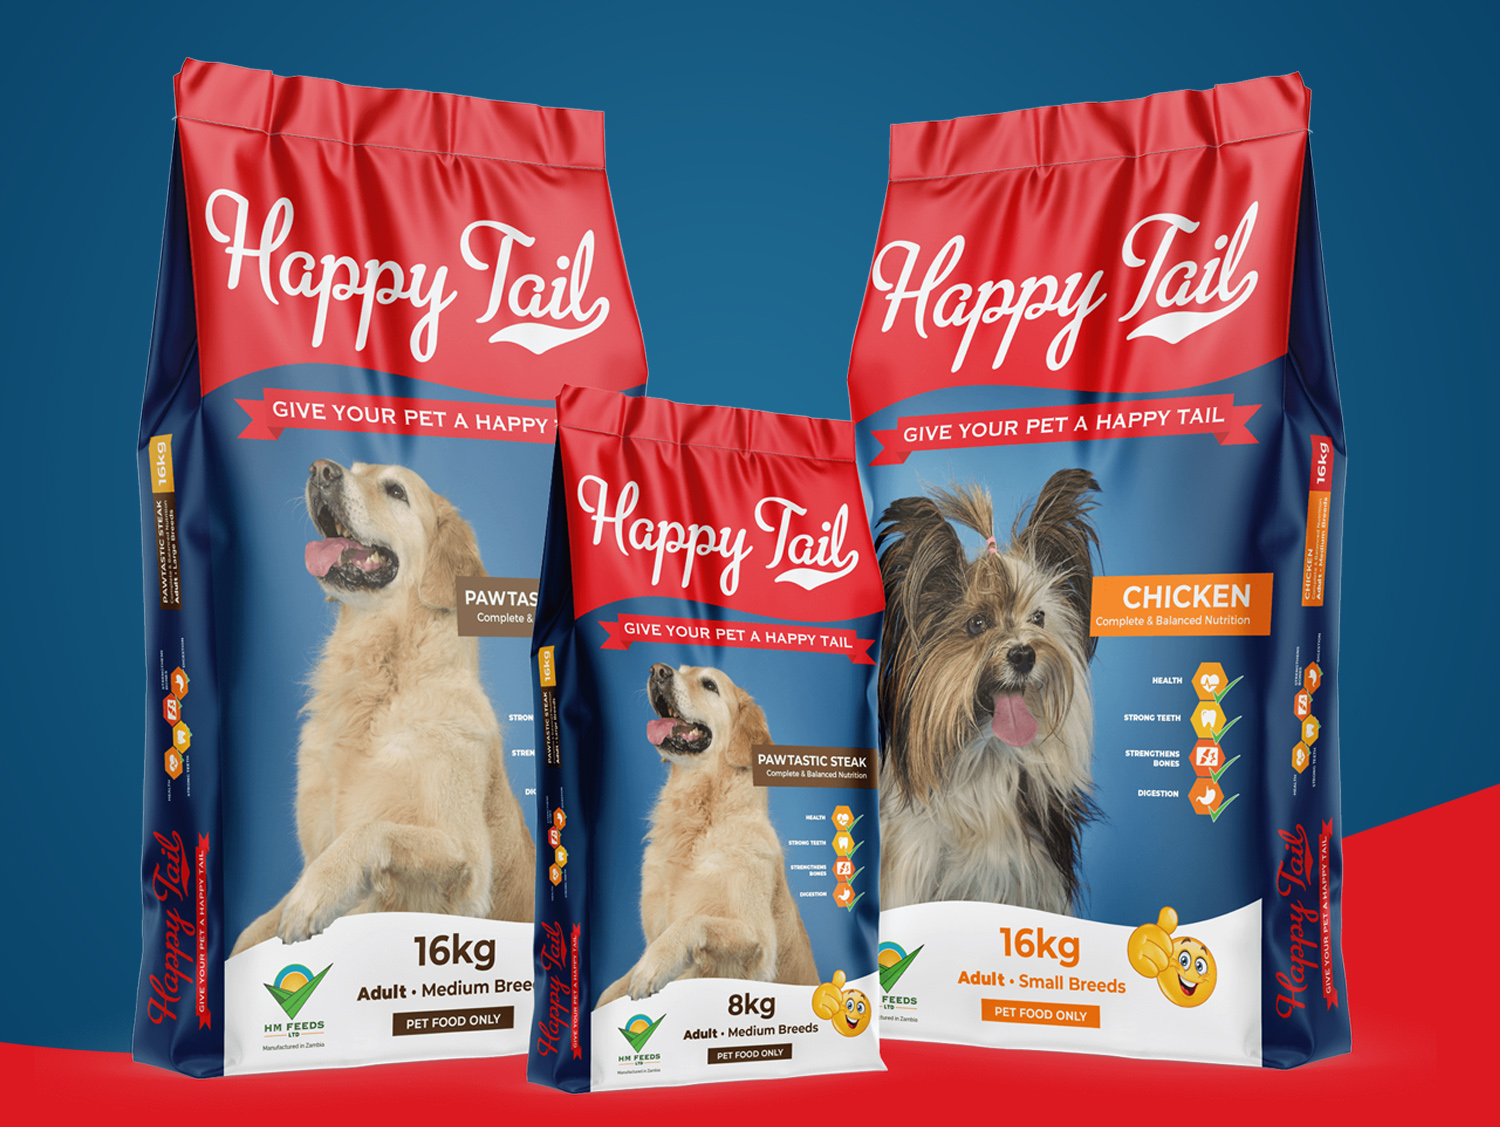 happy-tail-dog-food-designers-johannesburg-graphic-design-company-agent-orange-south-african.jpg